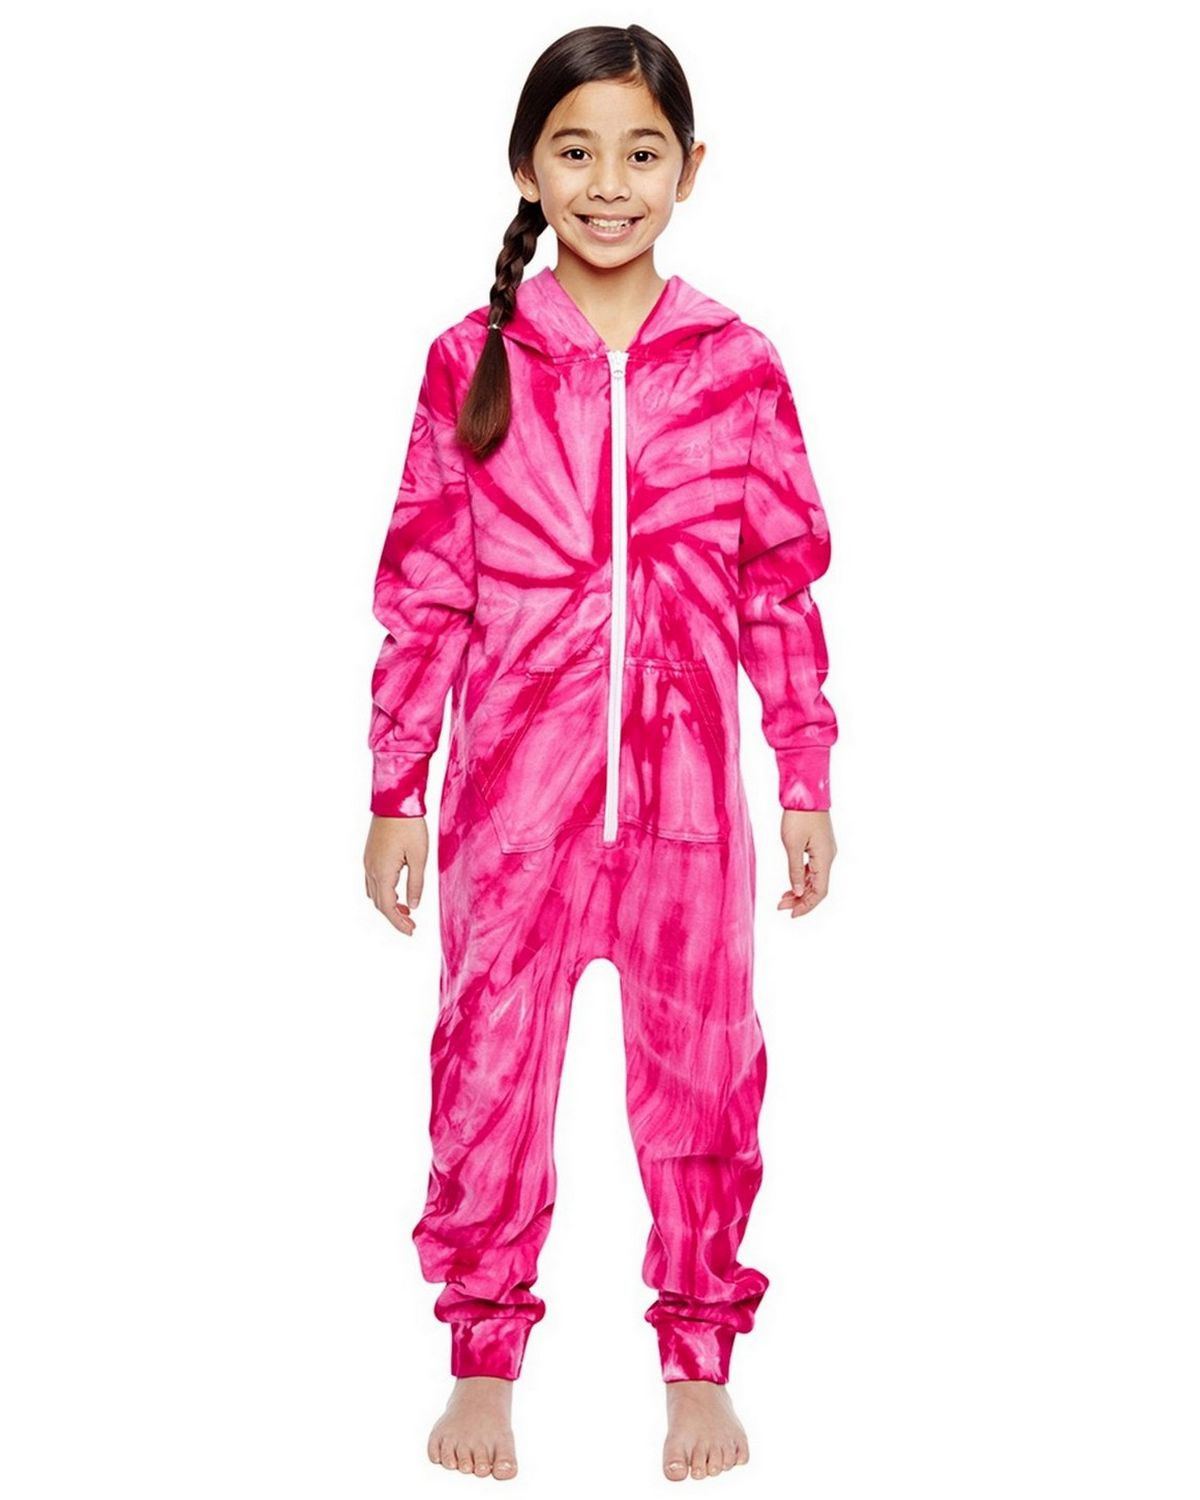 Tie-Dye CD892Y Youth All-In-One Loungewear - Spider Pink - L CD892Y